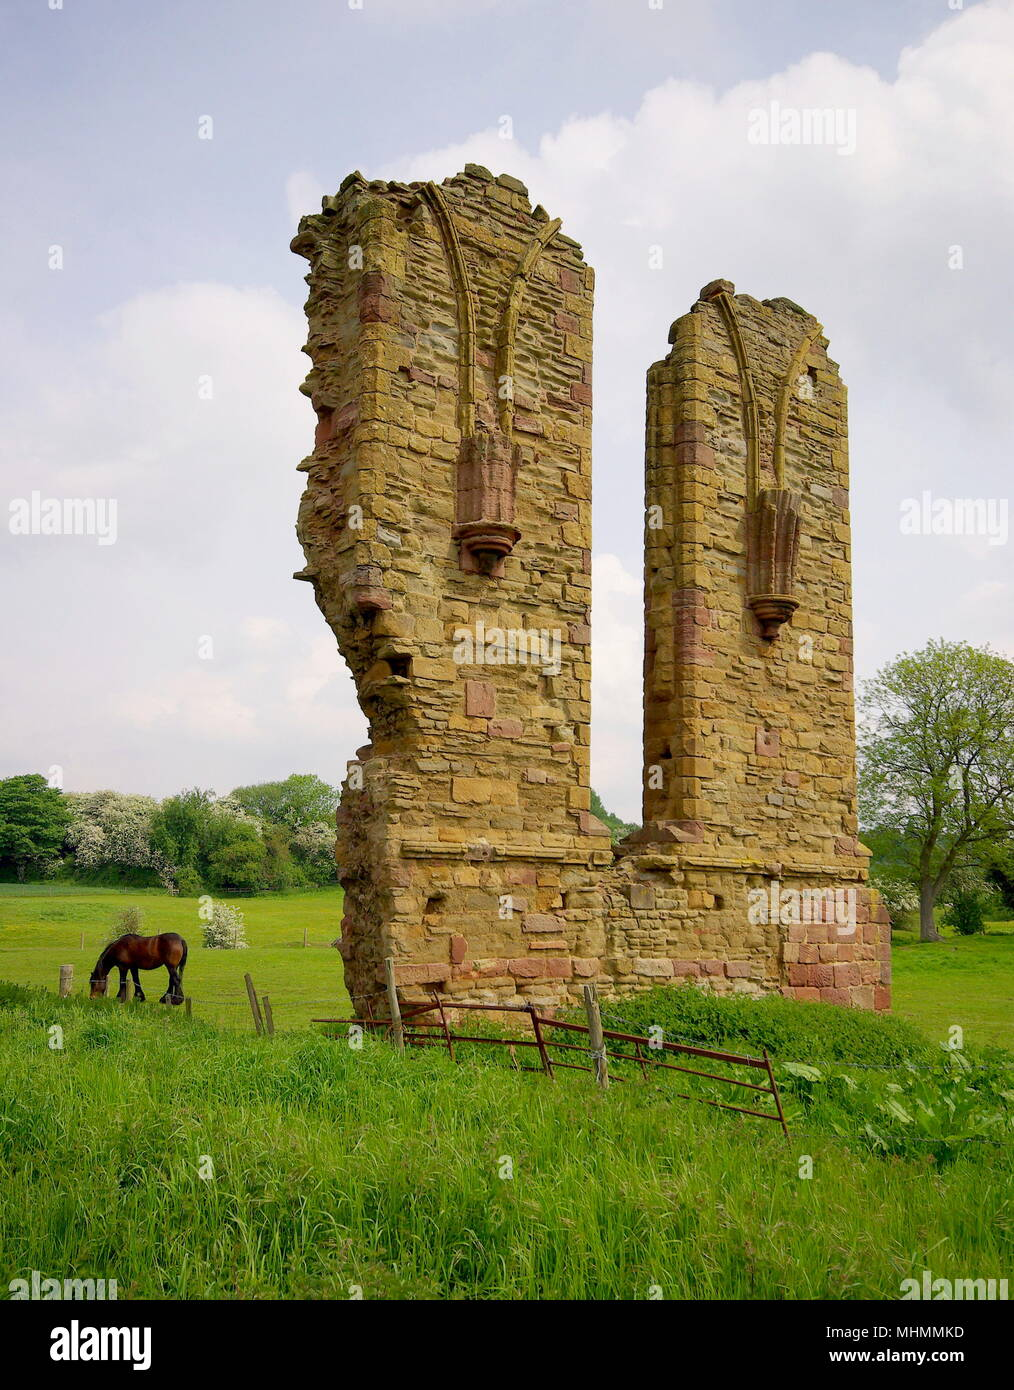 Part of the ruins of Halesowen Abbey in the West Midlands (previously in Shropshire, then later in Worcestershire).  The abbey was founded in 1215 by Premonstratensian canons under a grant from King John.  In later years much of the fabric was removed for building material and used in the surrounding area.      Date: May 2008 - Stock Image